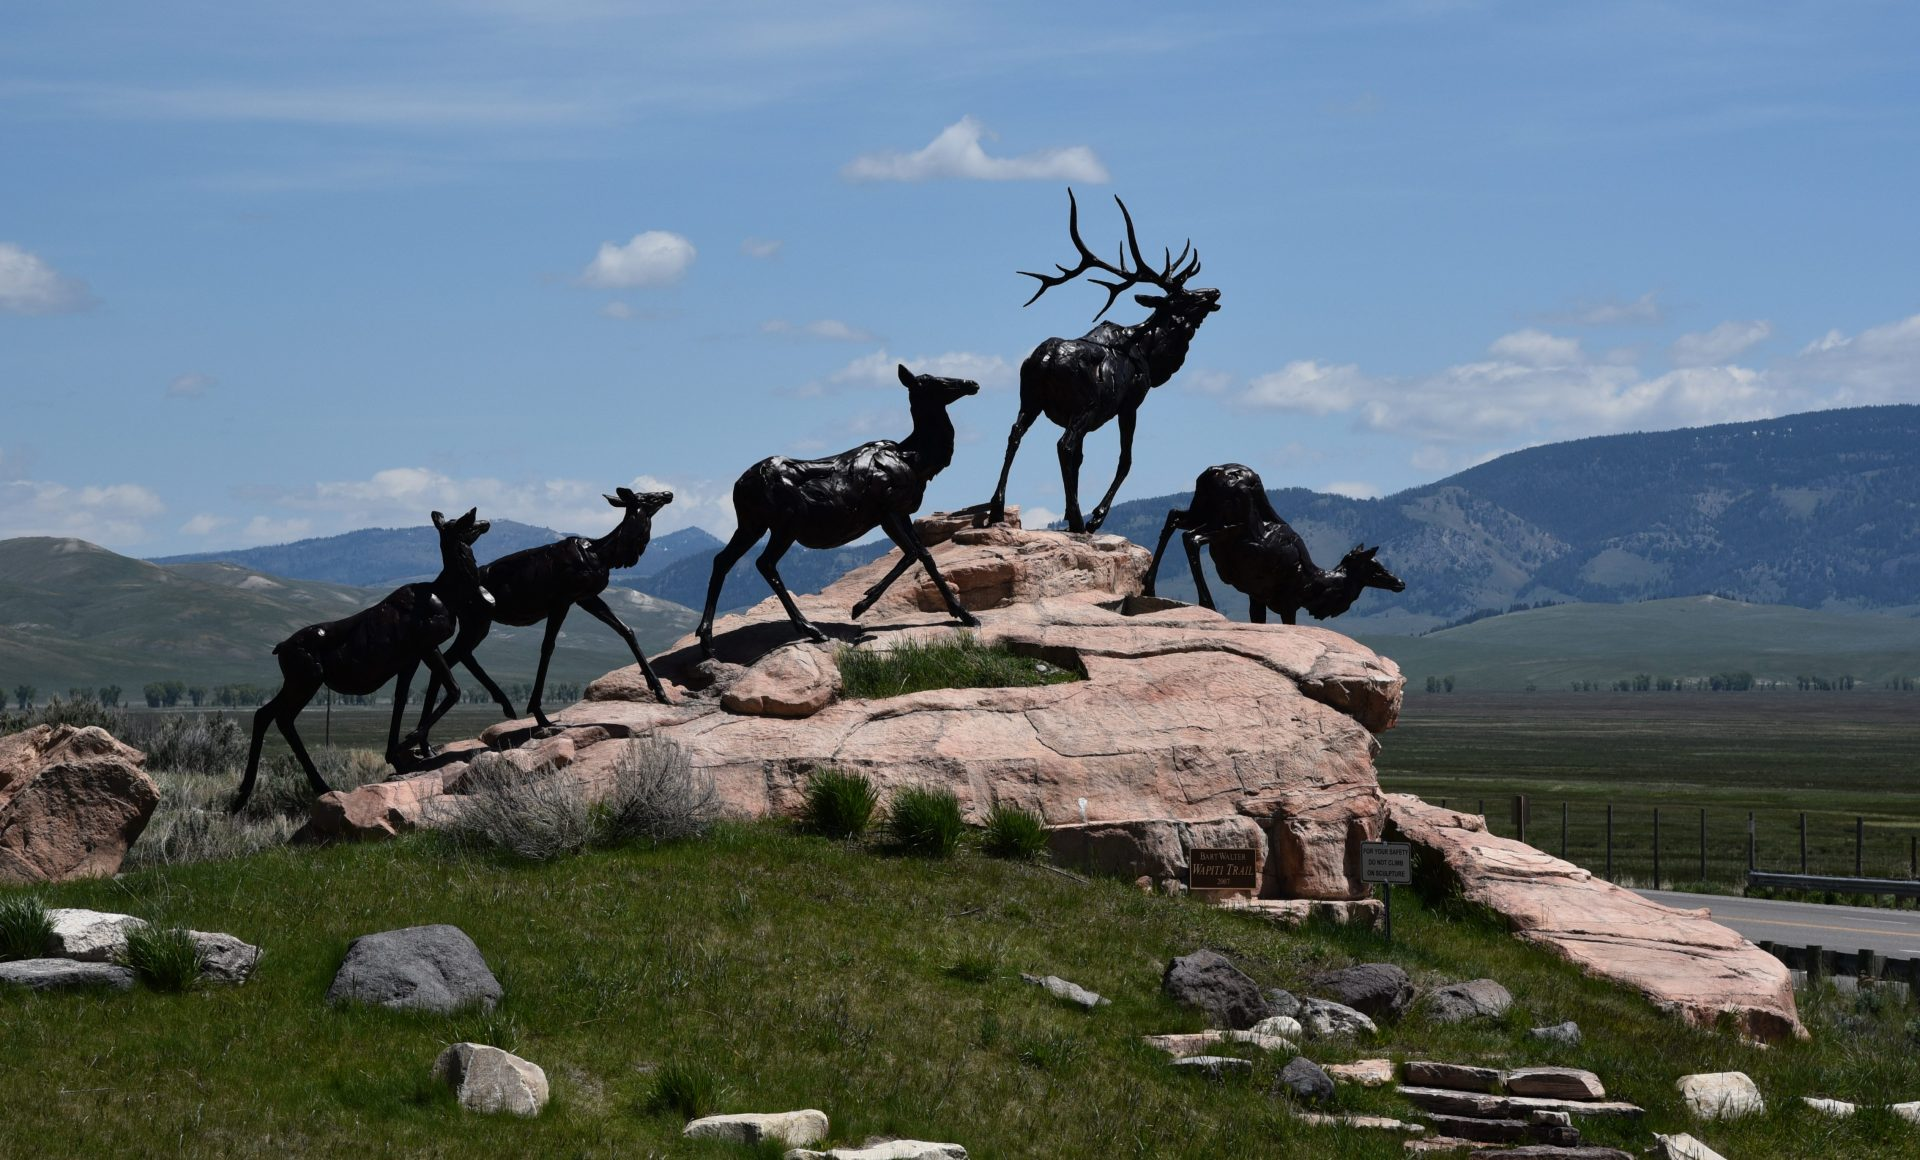 What to do in Jackson Wyoming -- museum of wildlife art By WildlifeArtJH - Own work, CC BY-SA 4.0, https://commons.wikimedia.org/w/index.php?curid=61029106